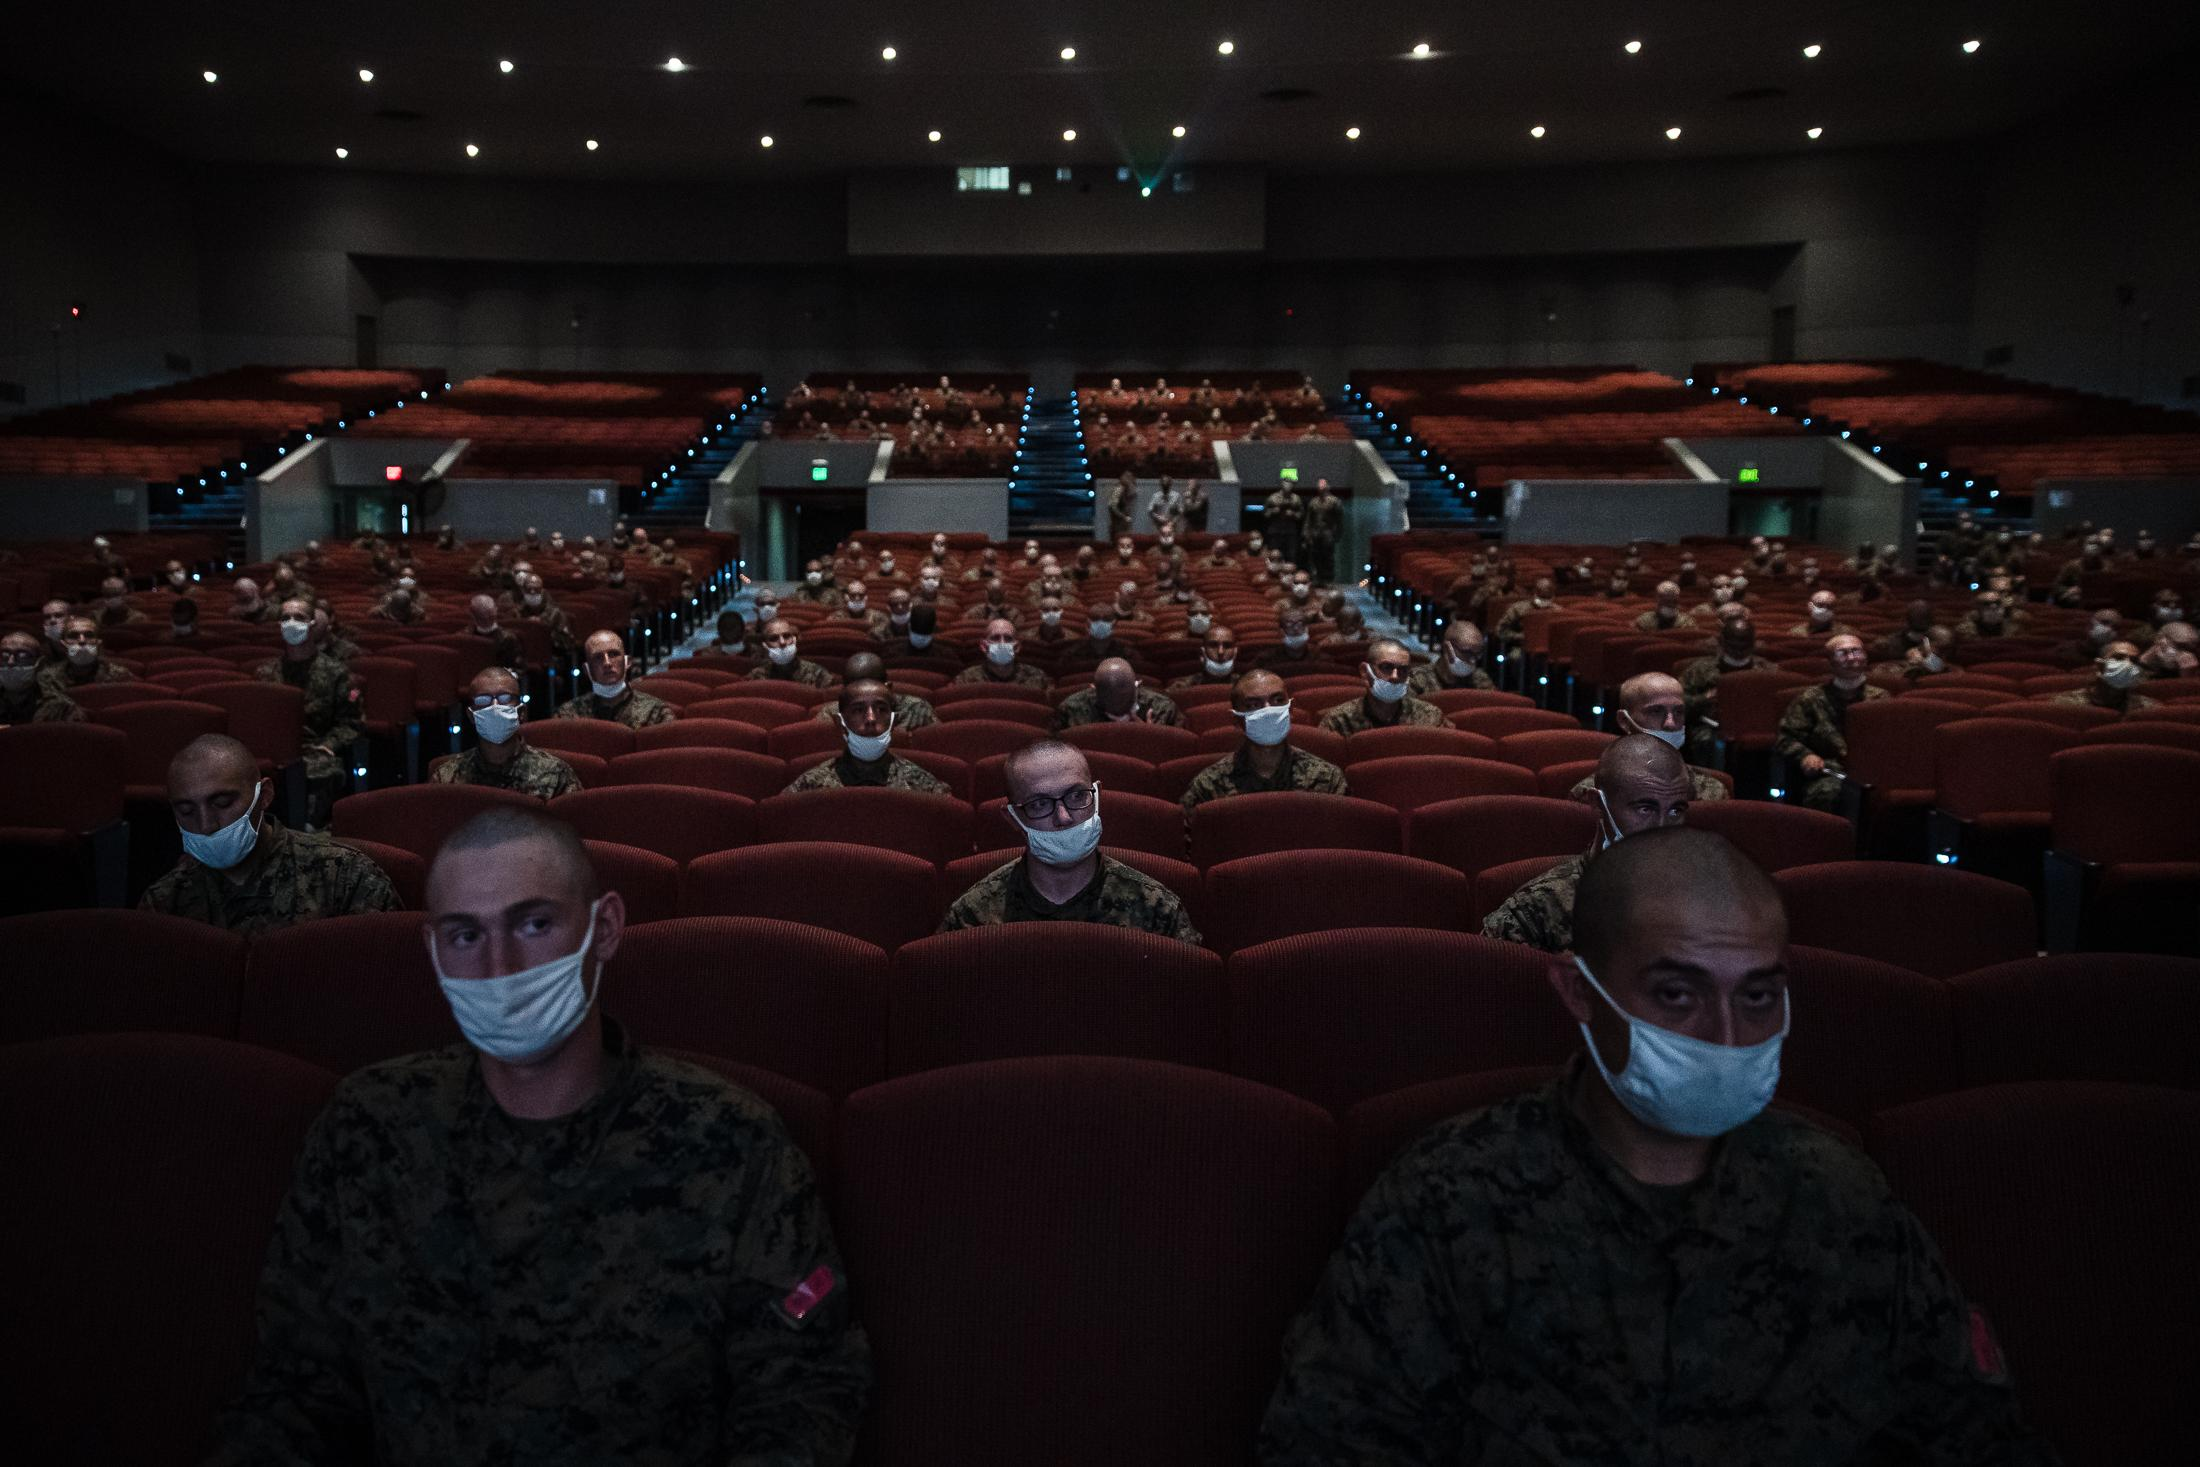 Recruits sit in the auditorium for class wearing face masks with empty seats in between them due to Covid-19 at the Marine Corps Recruit Depot San Diego.